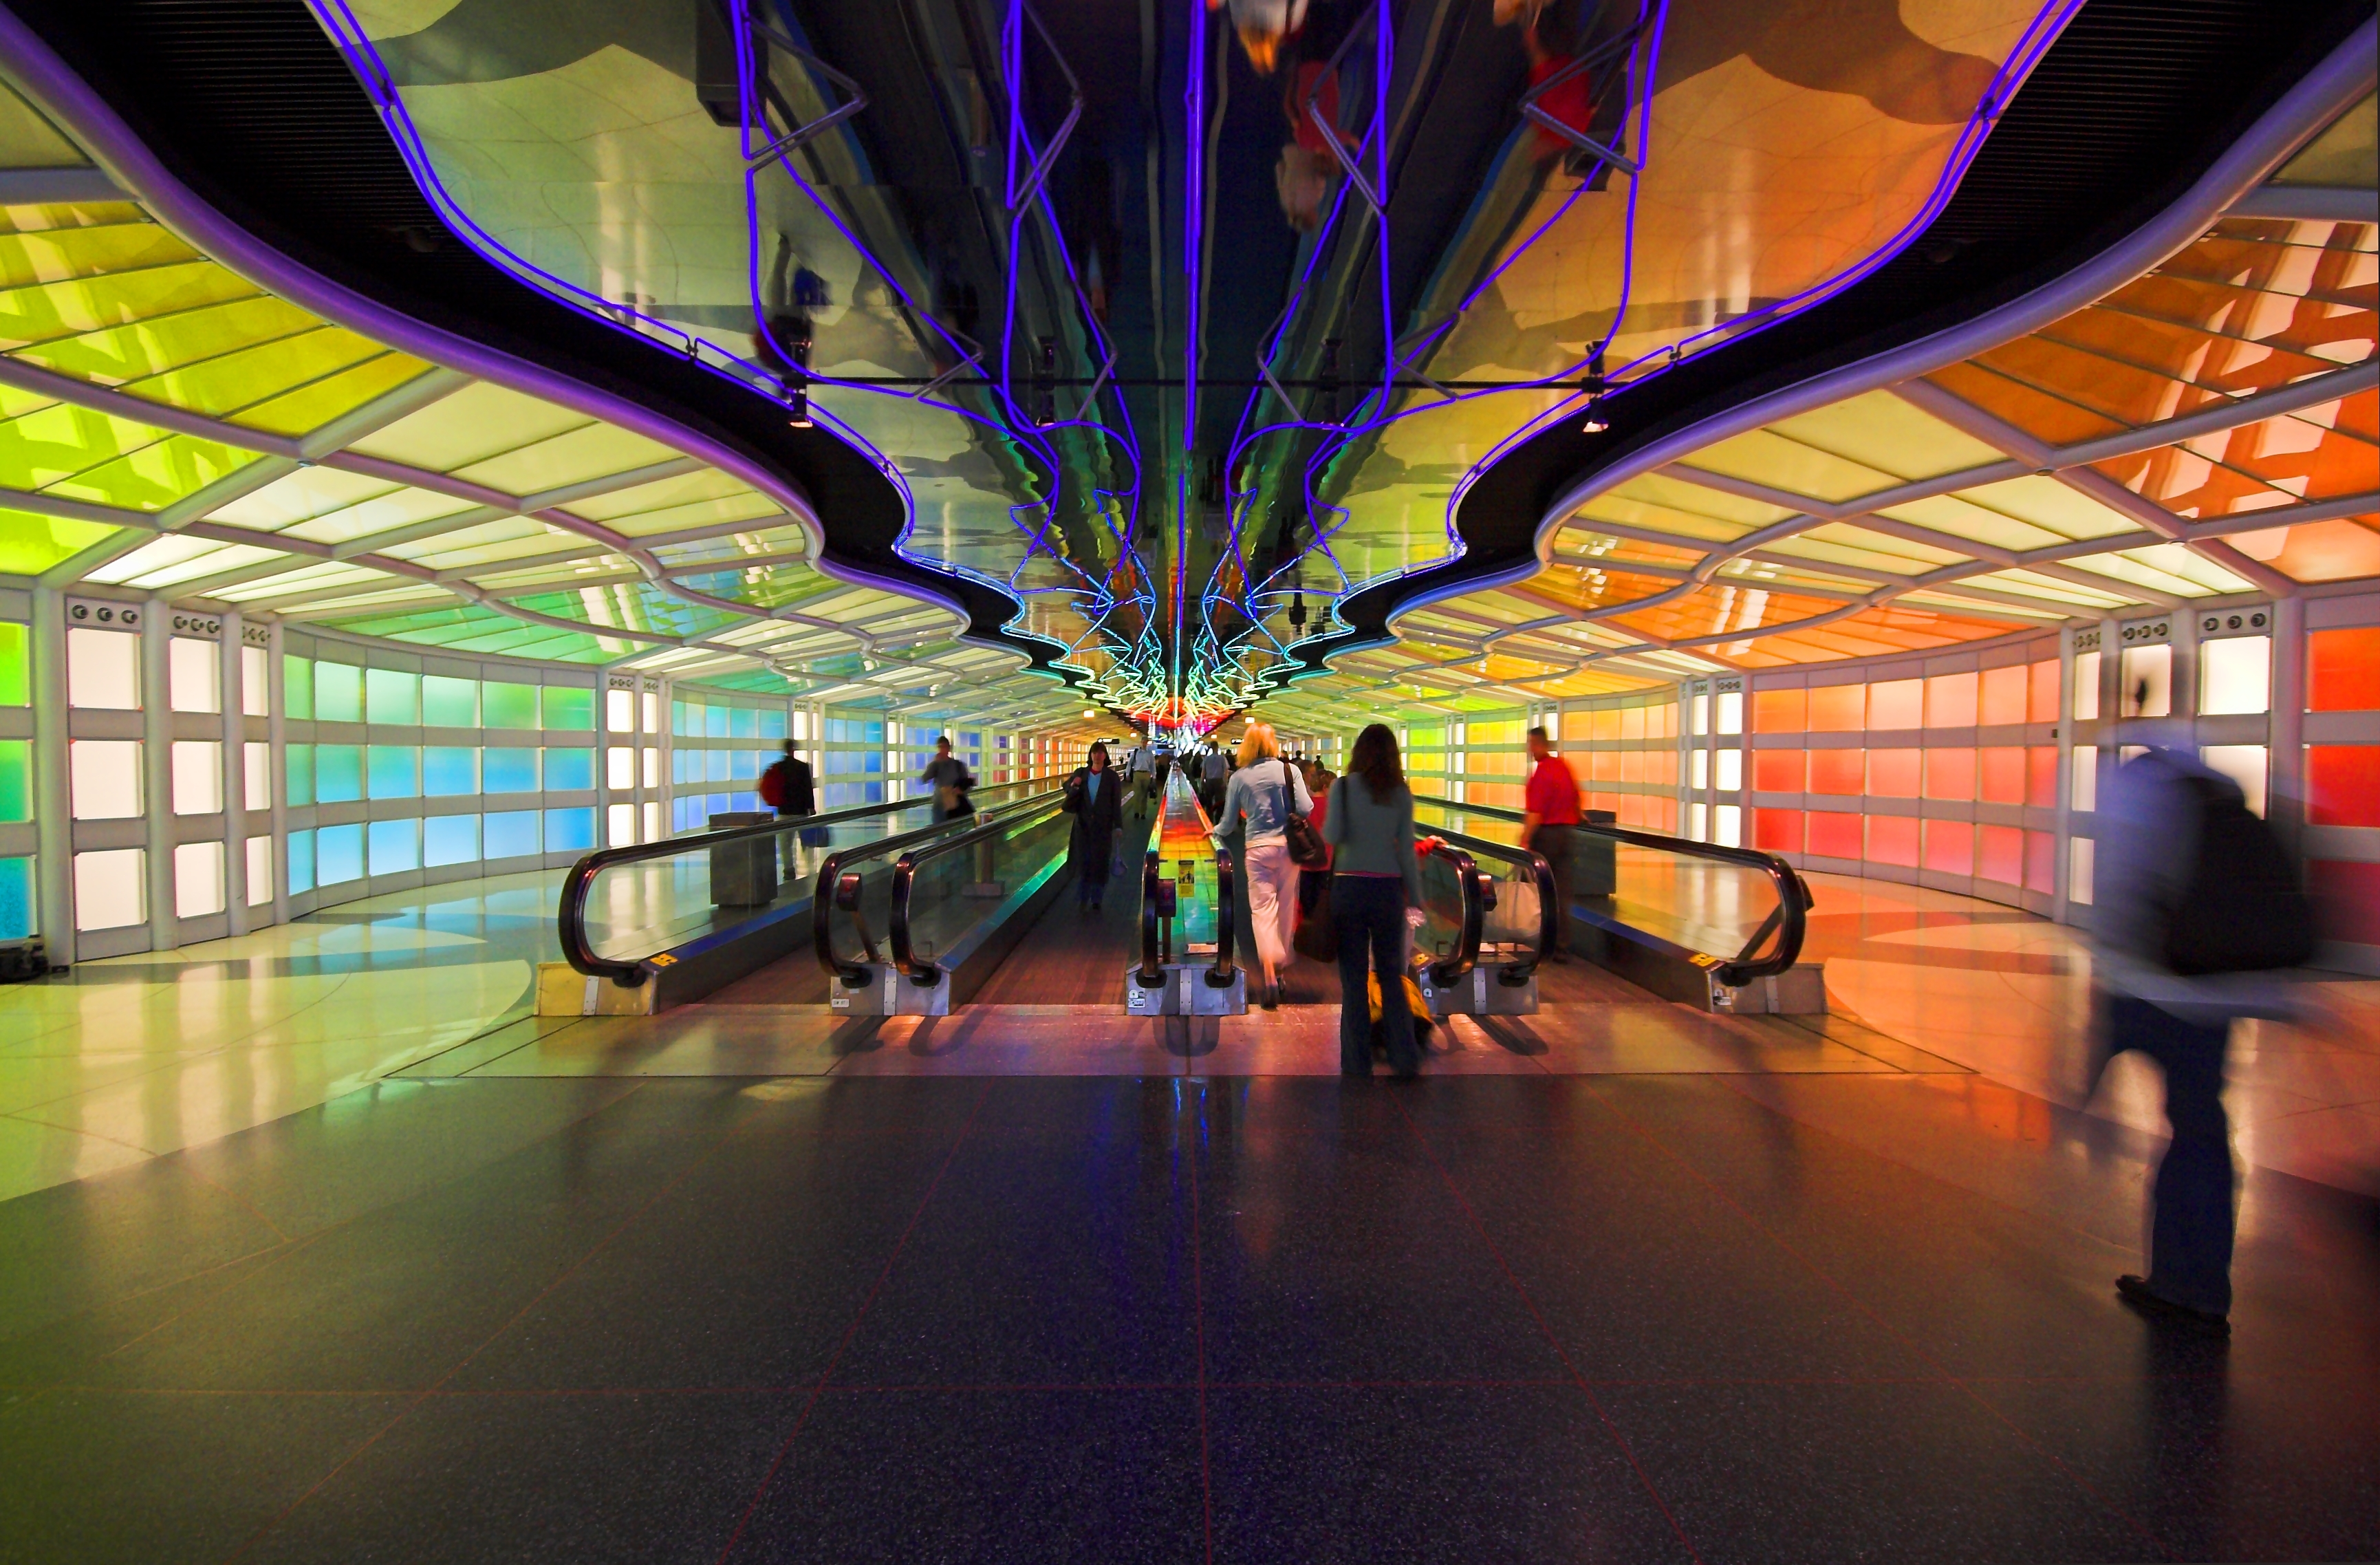 The interior of the Terminal 1 tunnel in the Chicago O'Hare airport. The walls are multicolored.